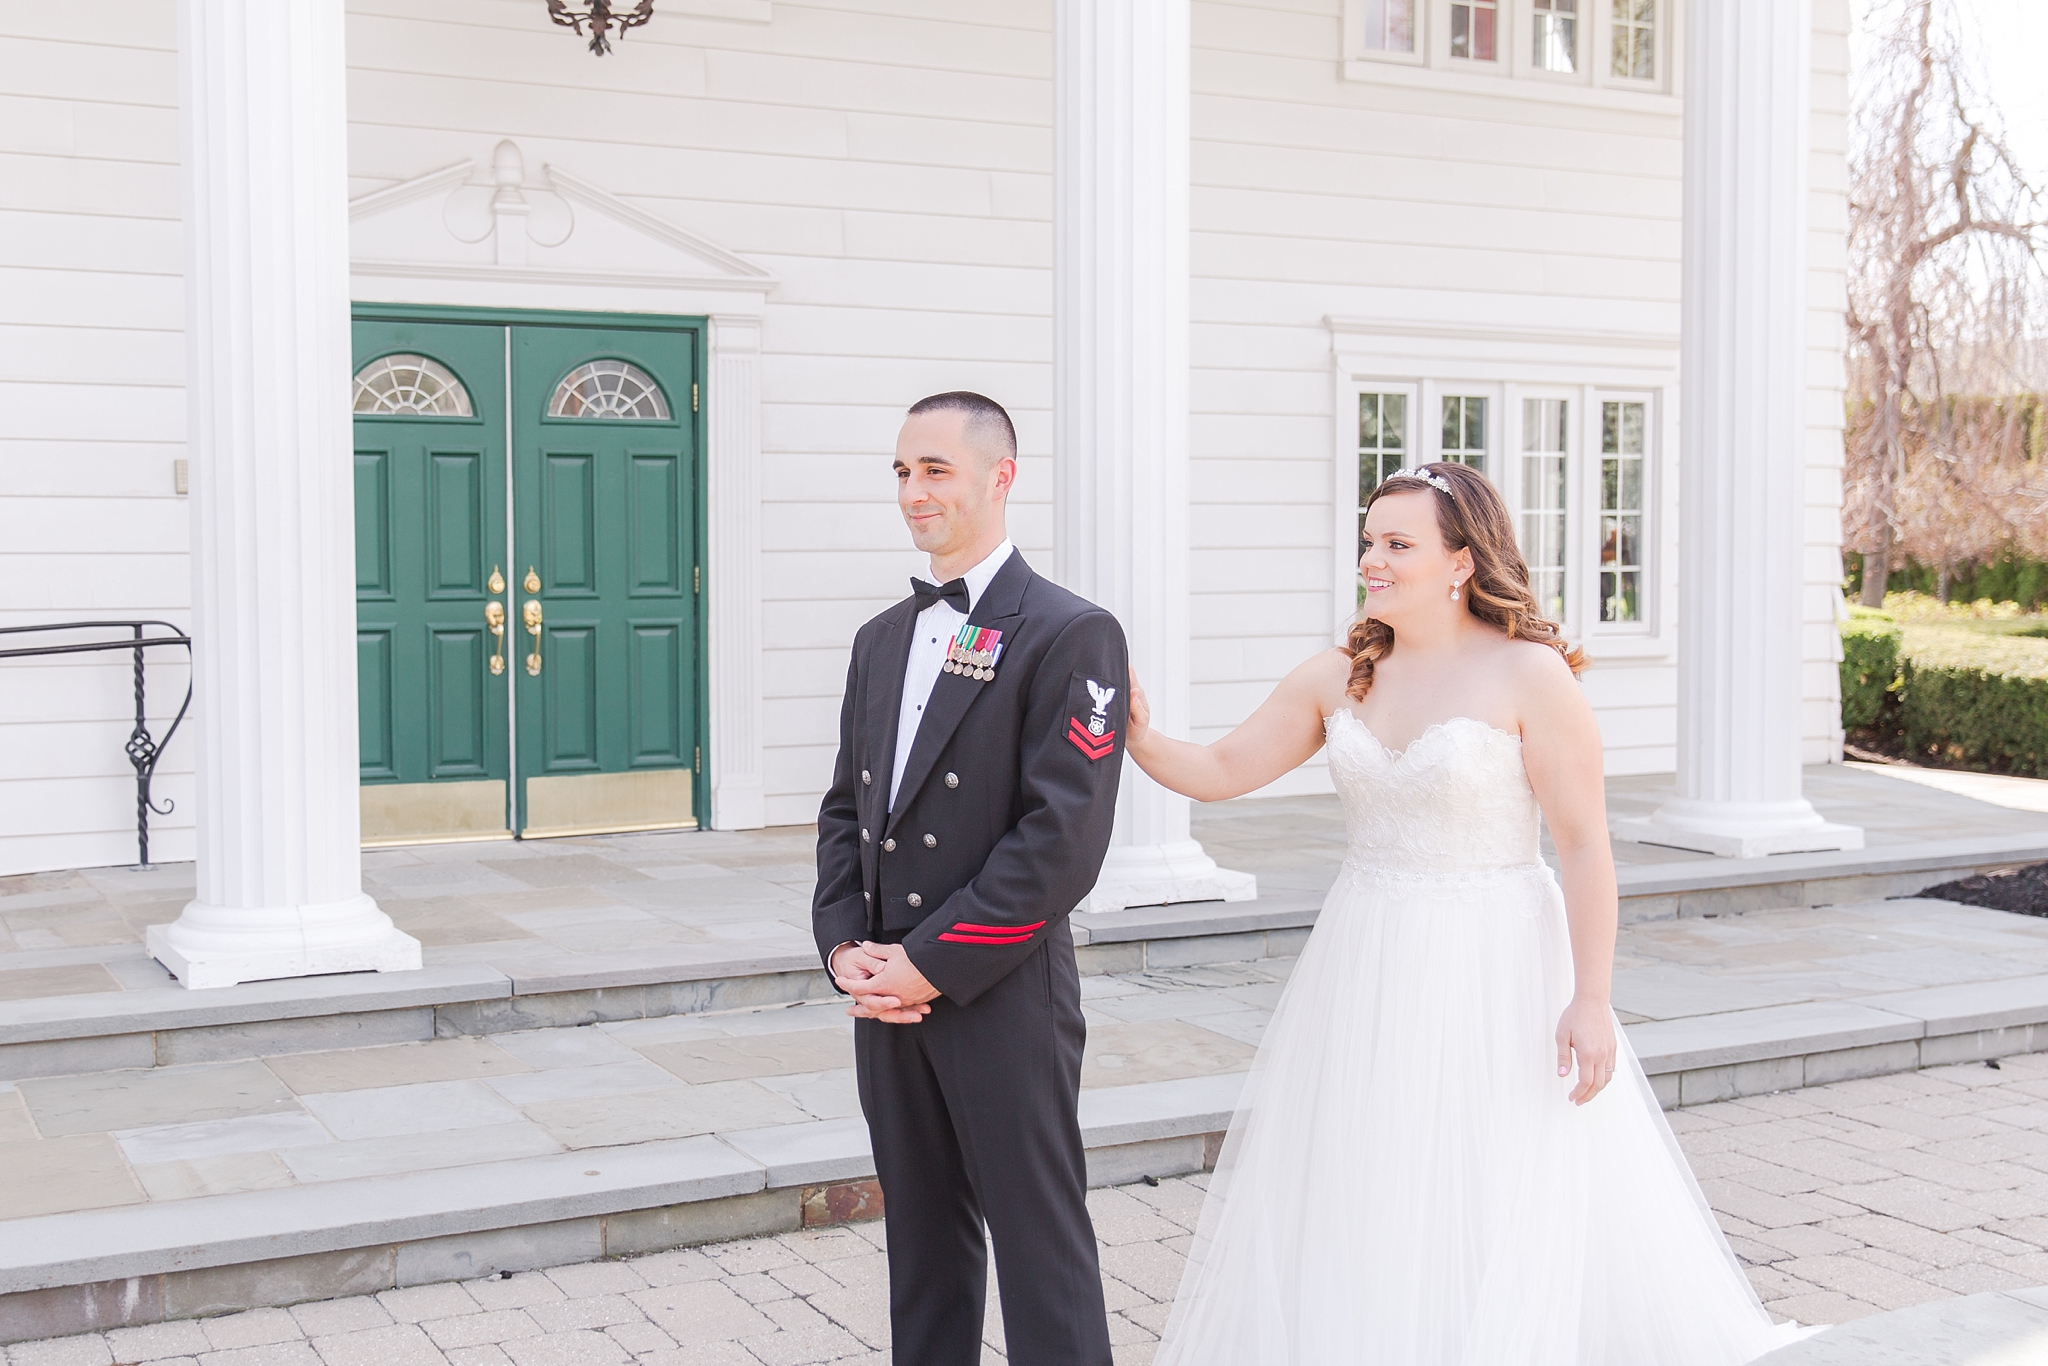 romantic-artful-candid-wedding-photos-in-st-clair-shores-at-the-white-house-wedding-chapel-by-courtney-carolyn-photography_0014.jpg